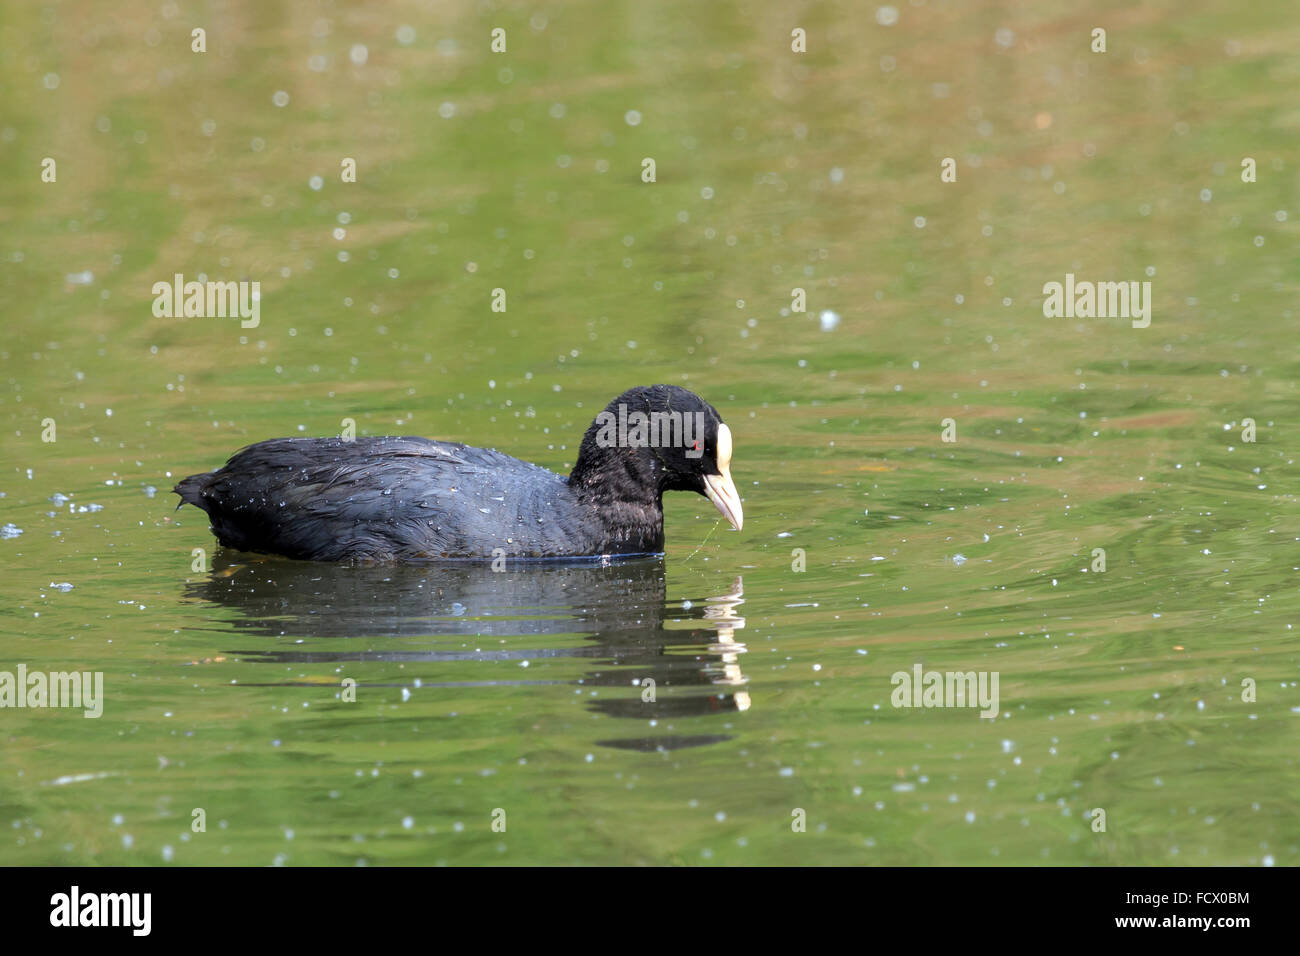 Sunlit Coot reflected in the water in the UK - Stock Image